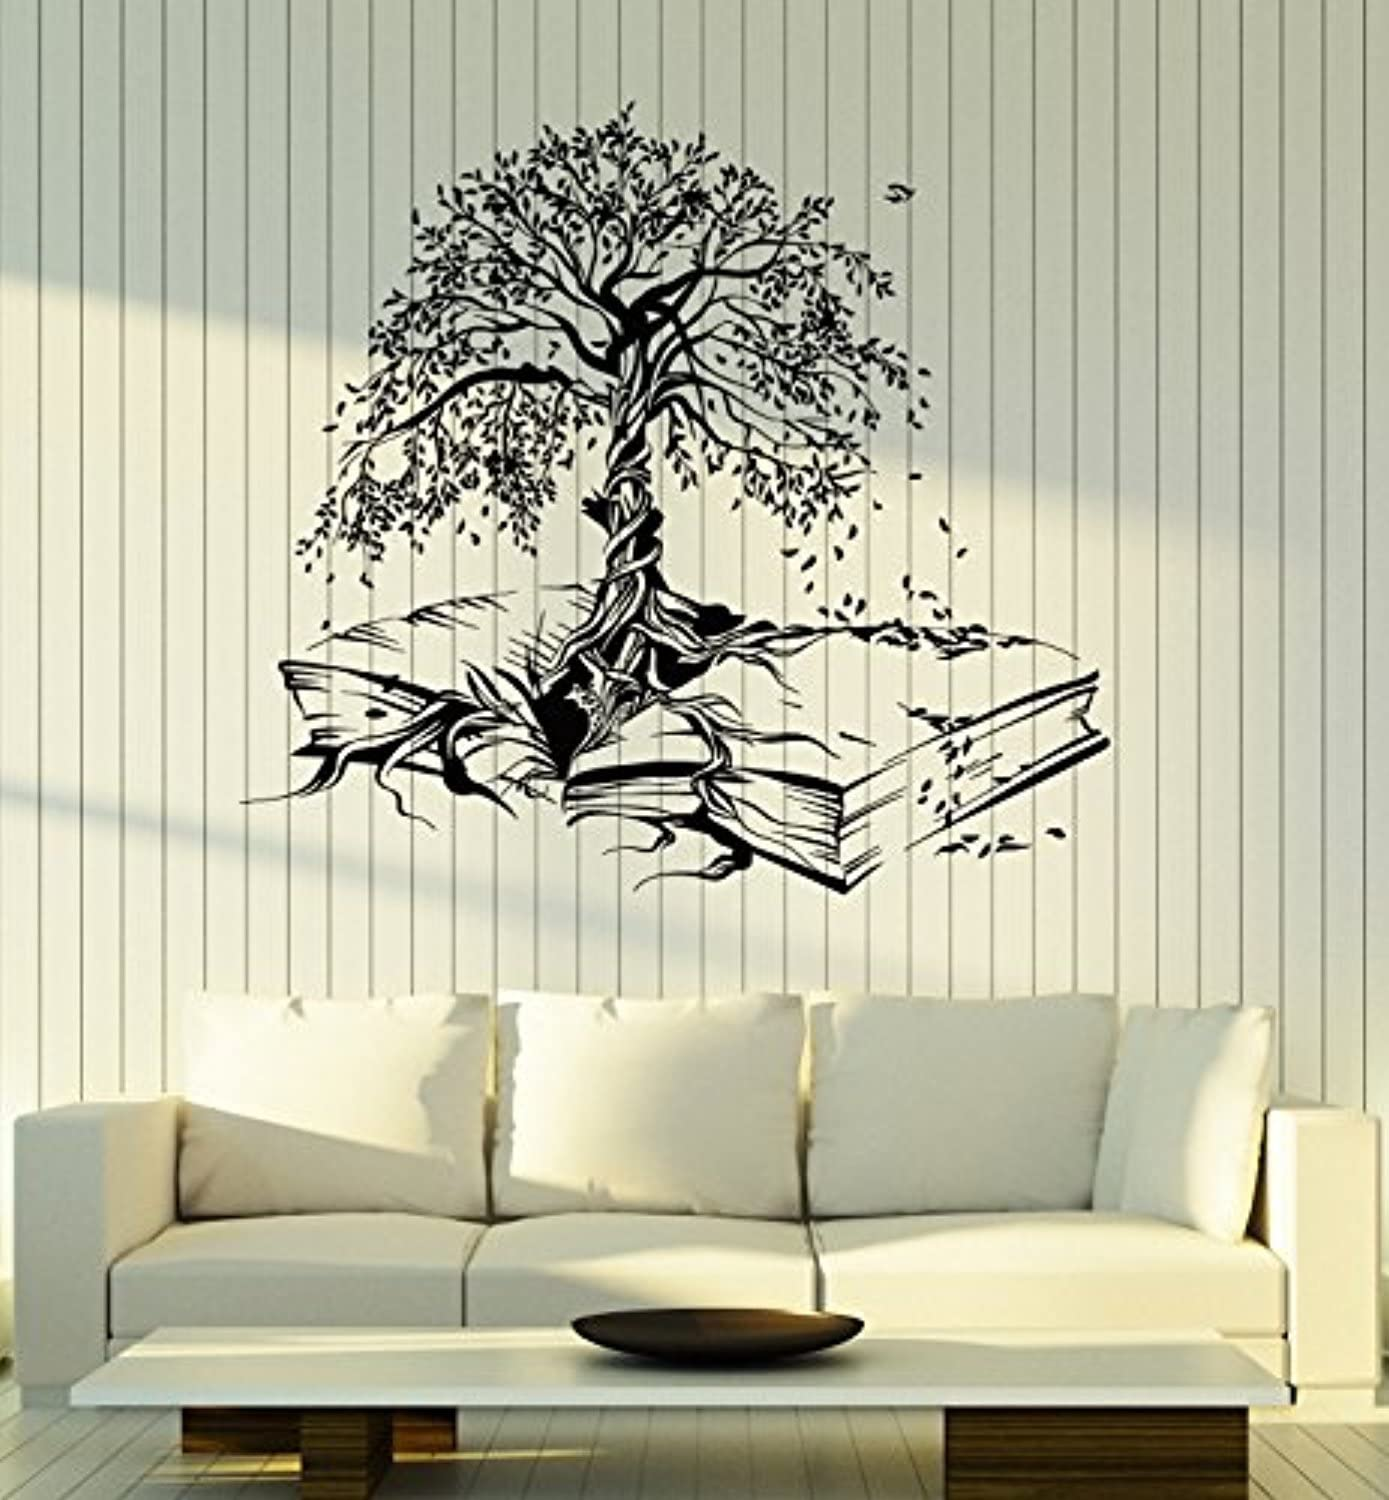 Removable you are so loved Harry Poter Home Decor Vinyl Wall Stickers Waterproof